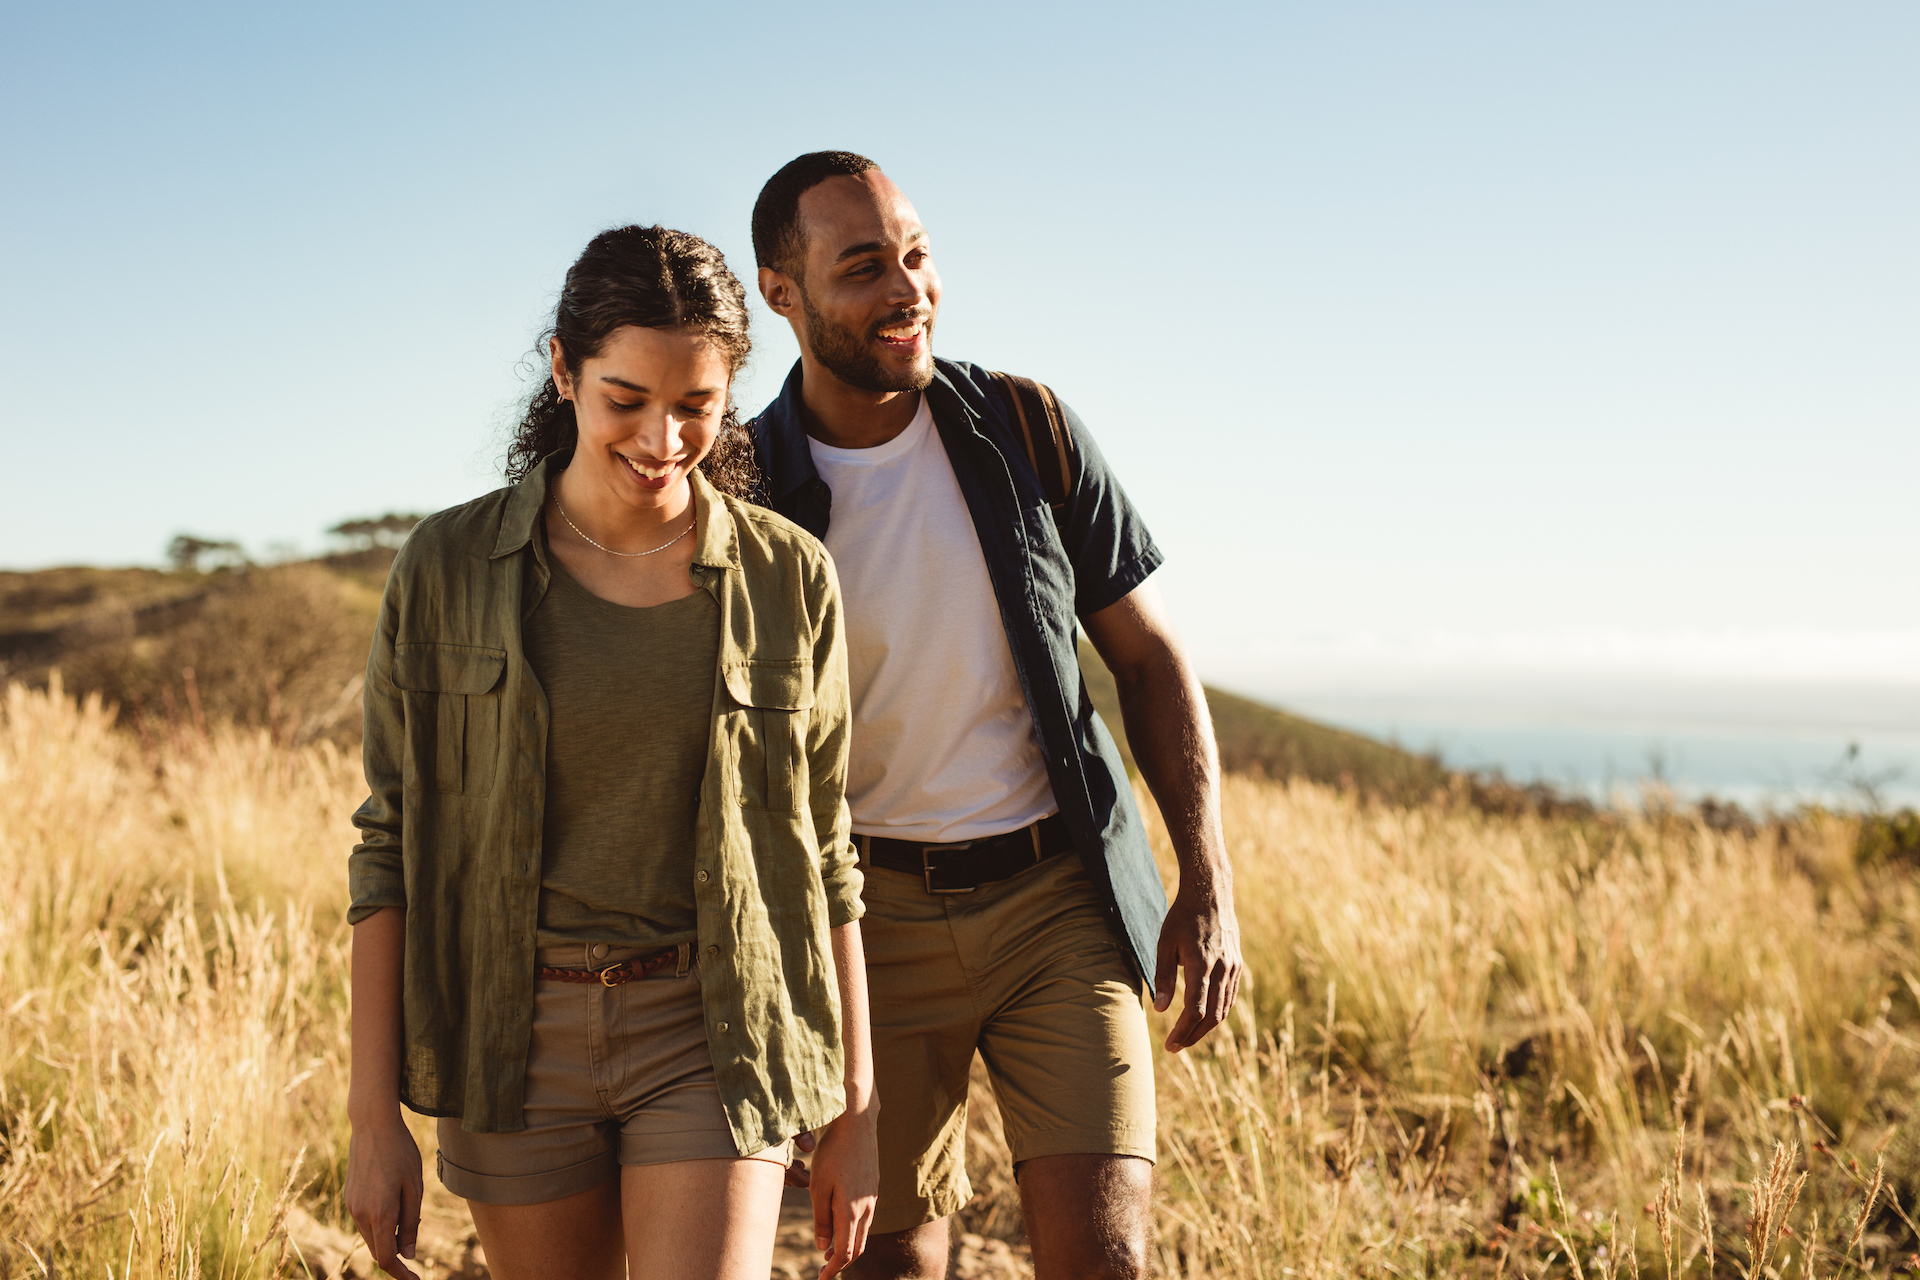 Man and woman hiking and smiling